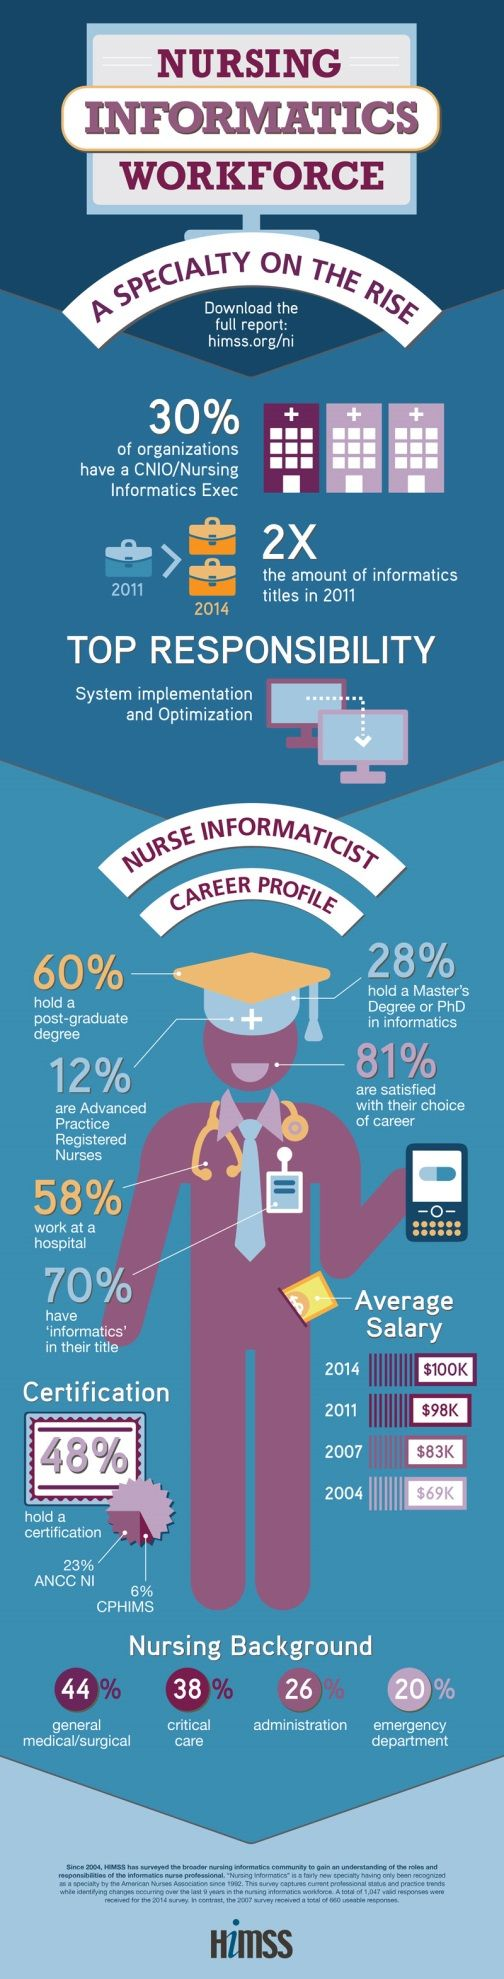 career goals in nursing As the student nurse approaches graduation, thoughts of beginning a career in nursing come to mind a new nurse should think very seriously about their career goals.